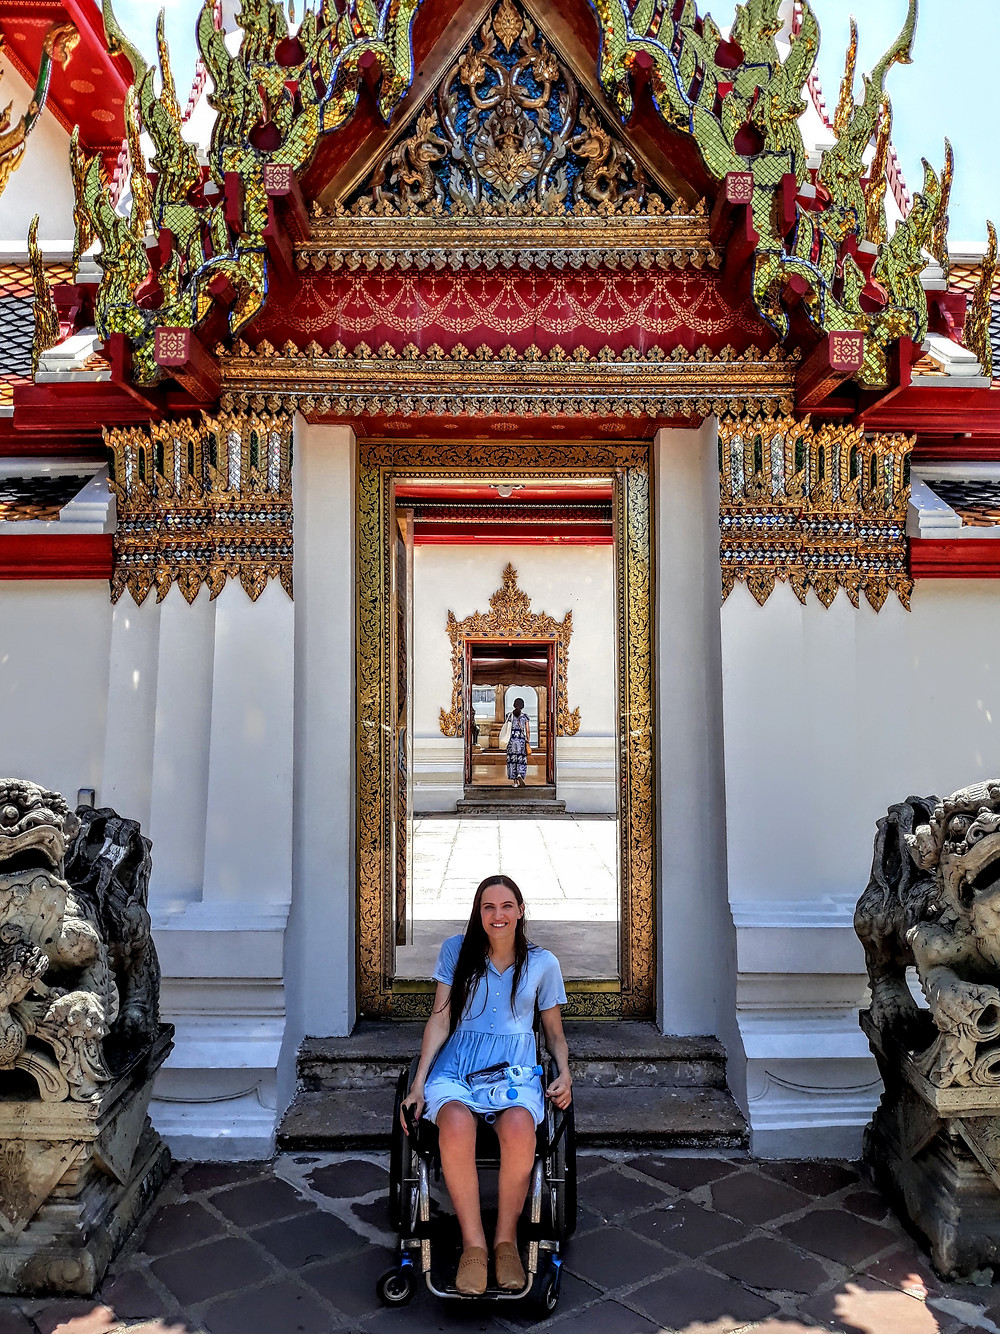 Kendra smiling wide and sitting in her wheelchair in front of a very fancy temple in Thailand